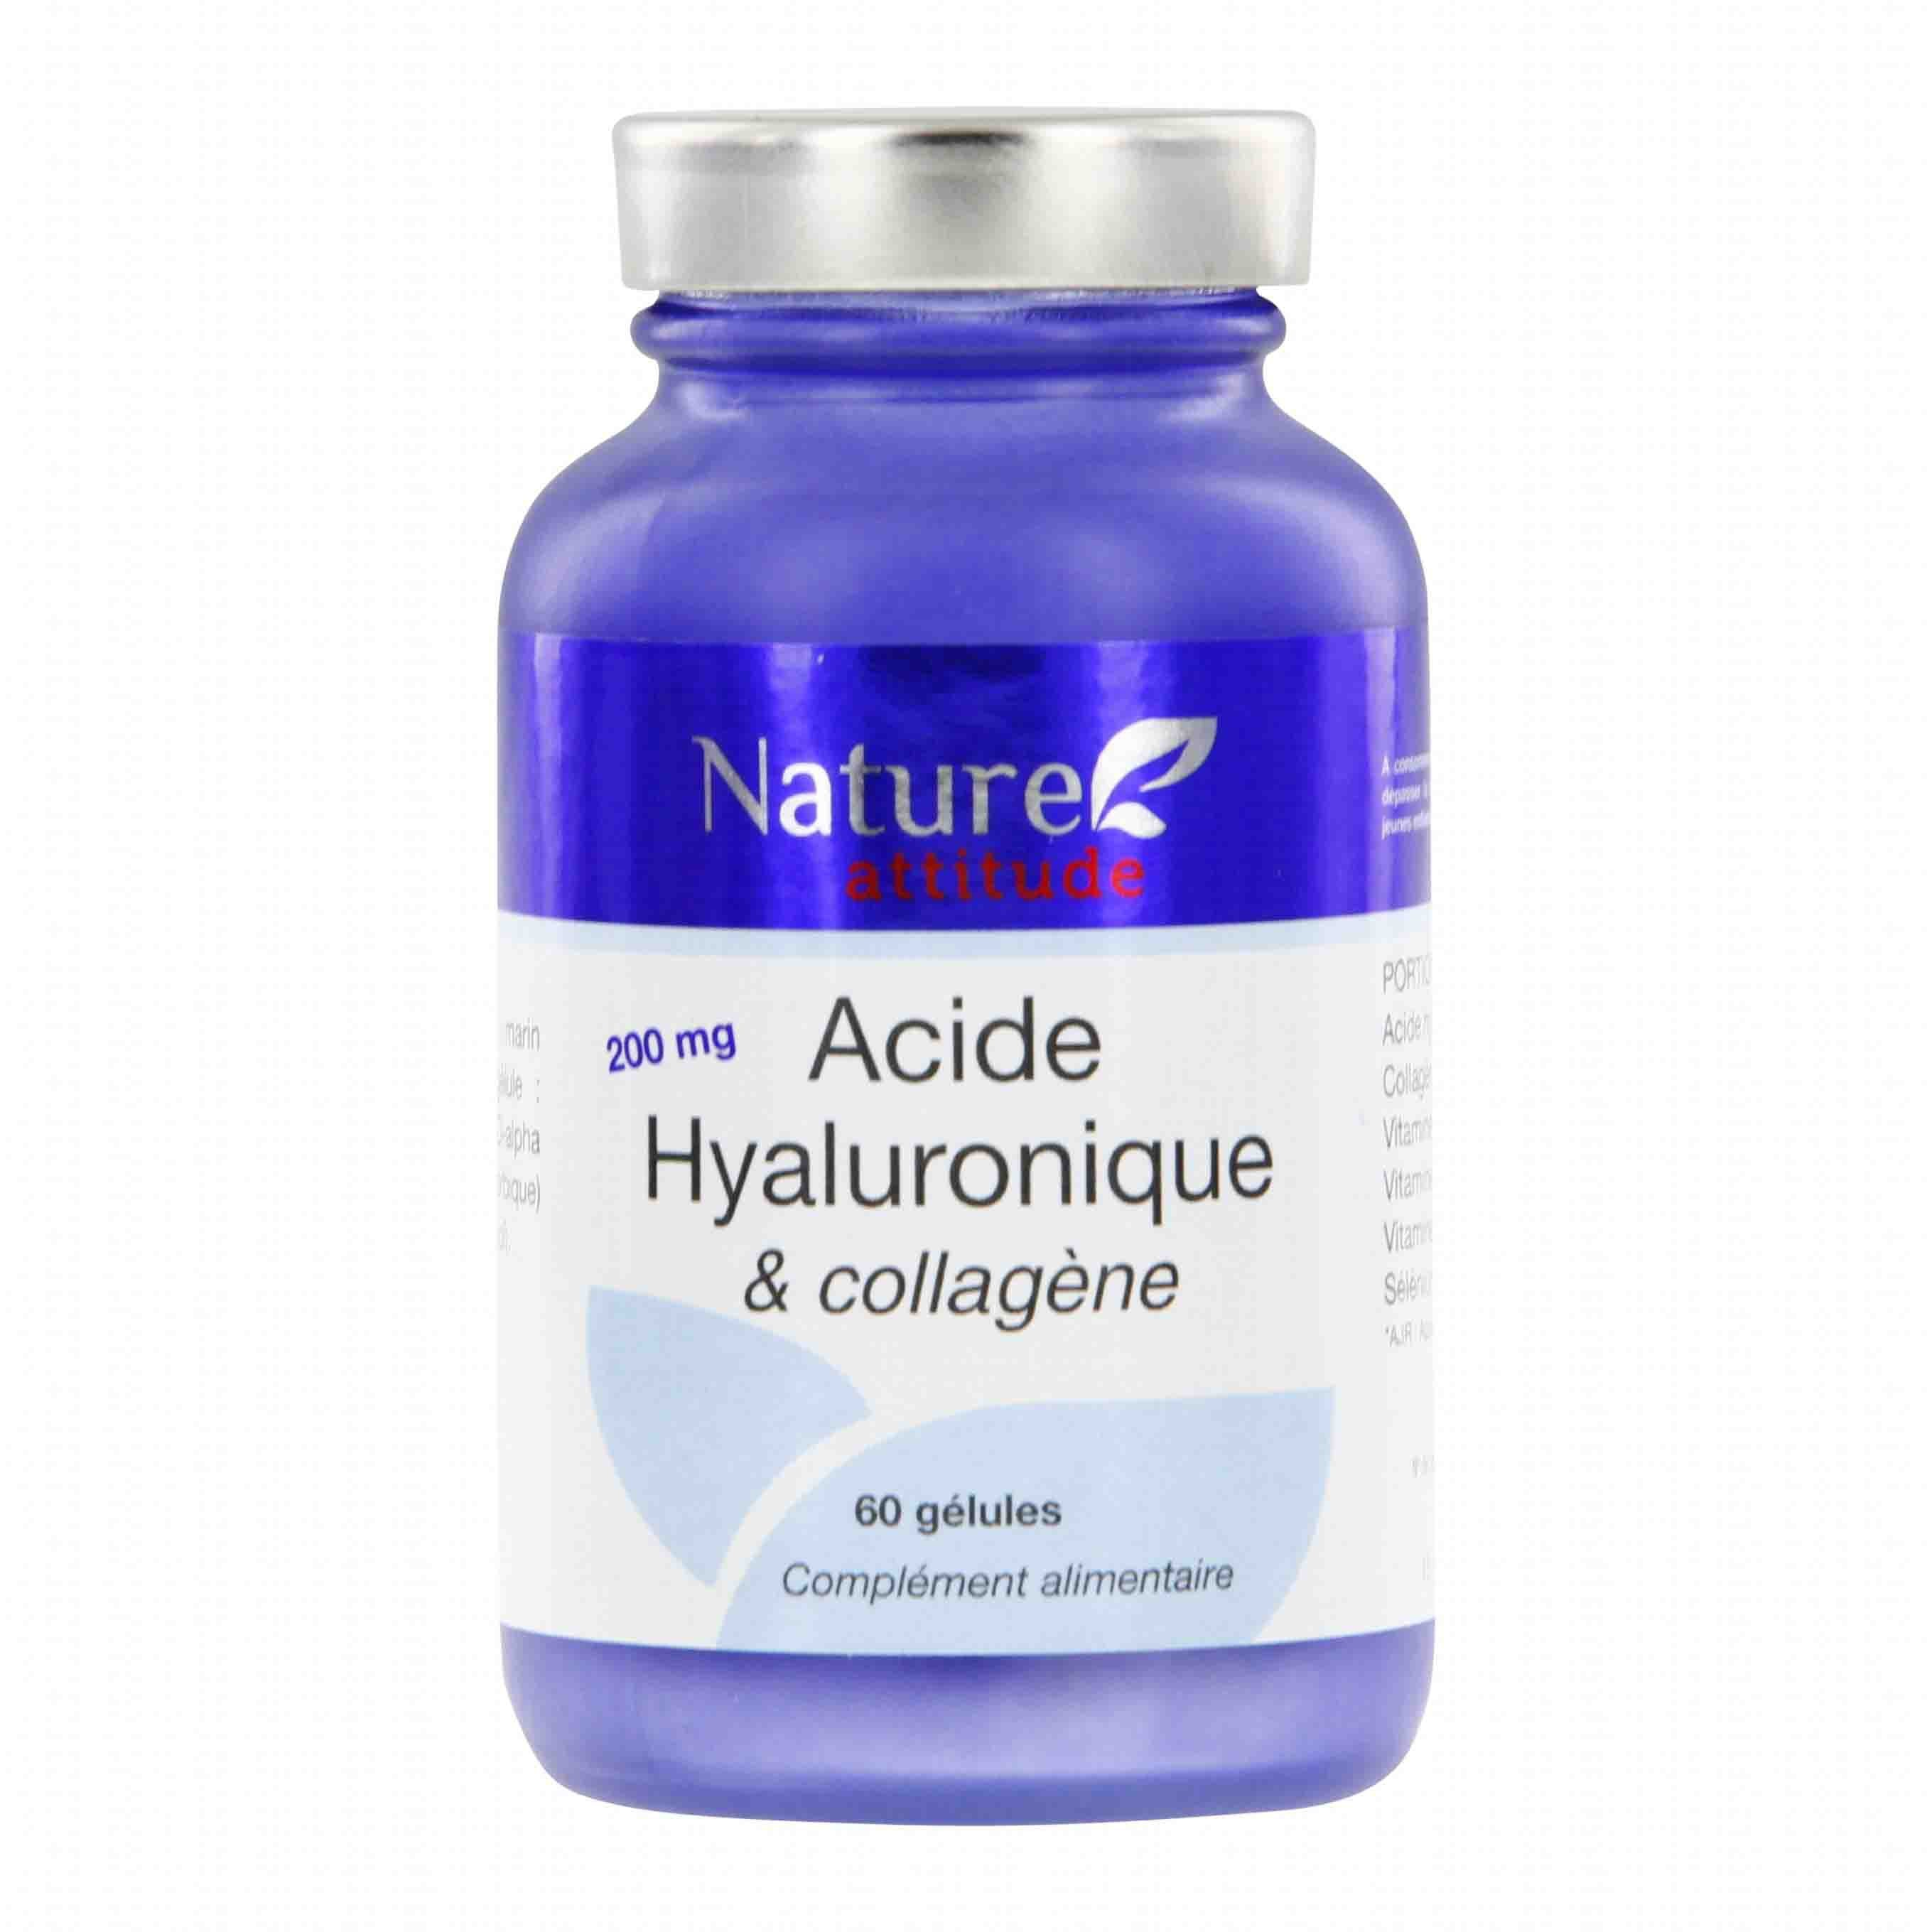 Prix de Nature attitude acide hyaluronique et collagène 60